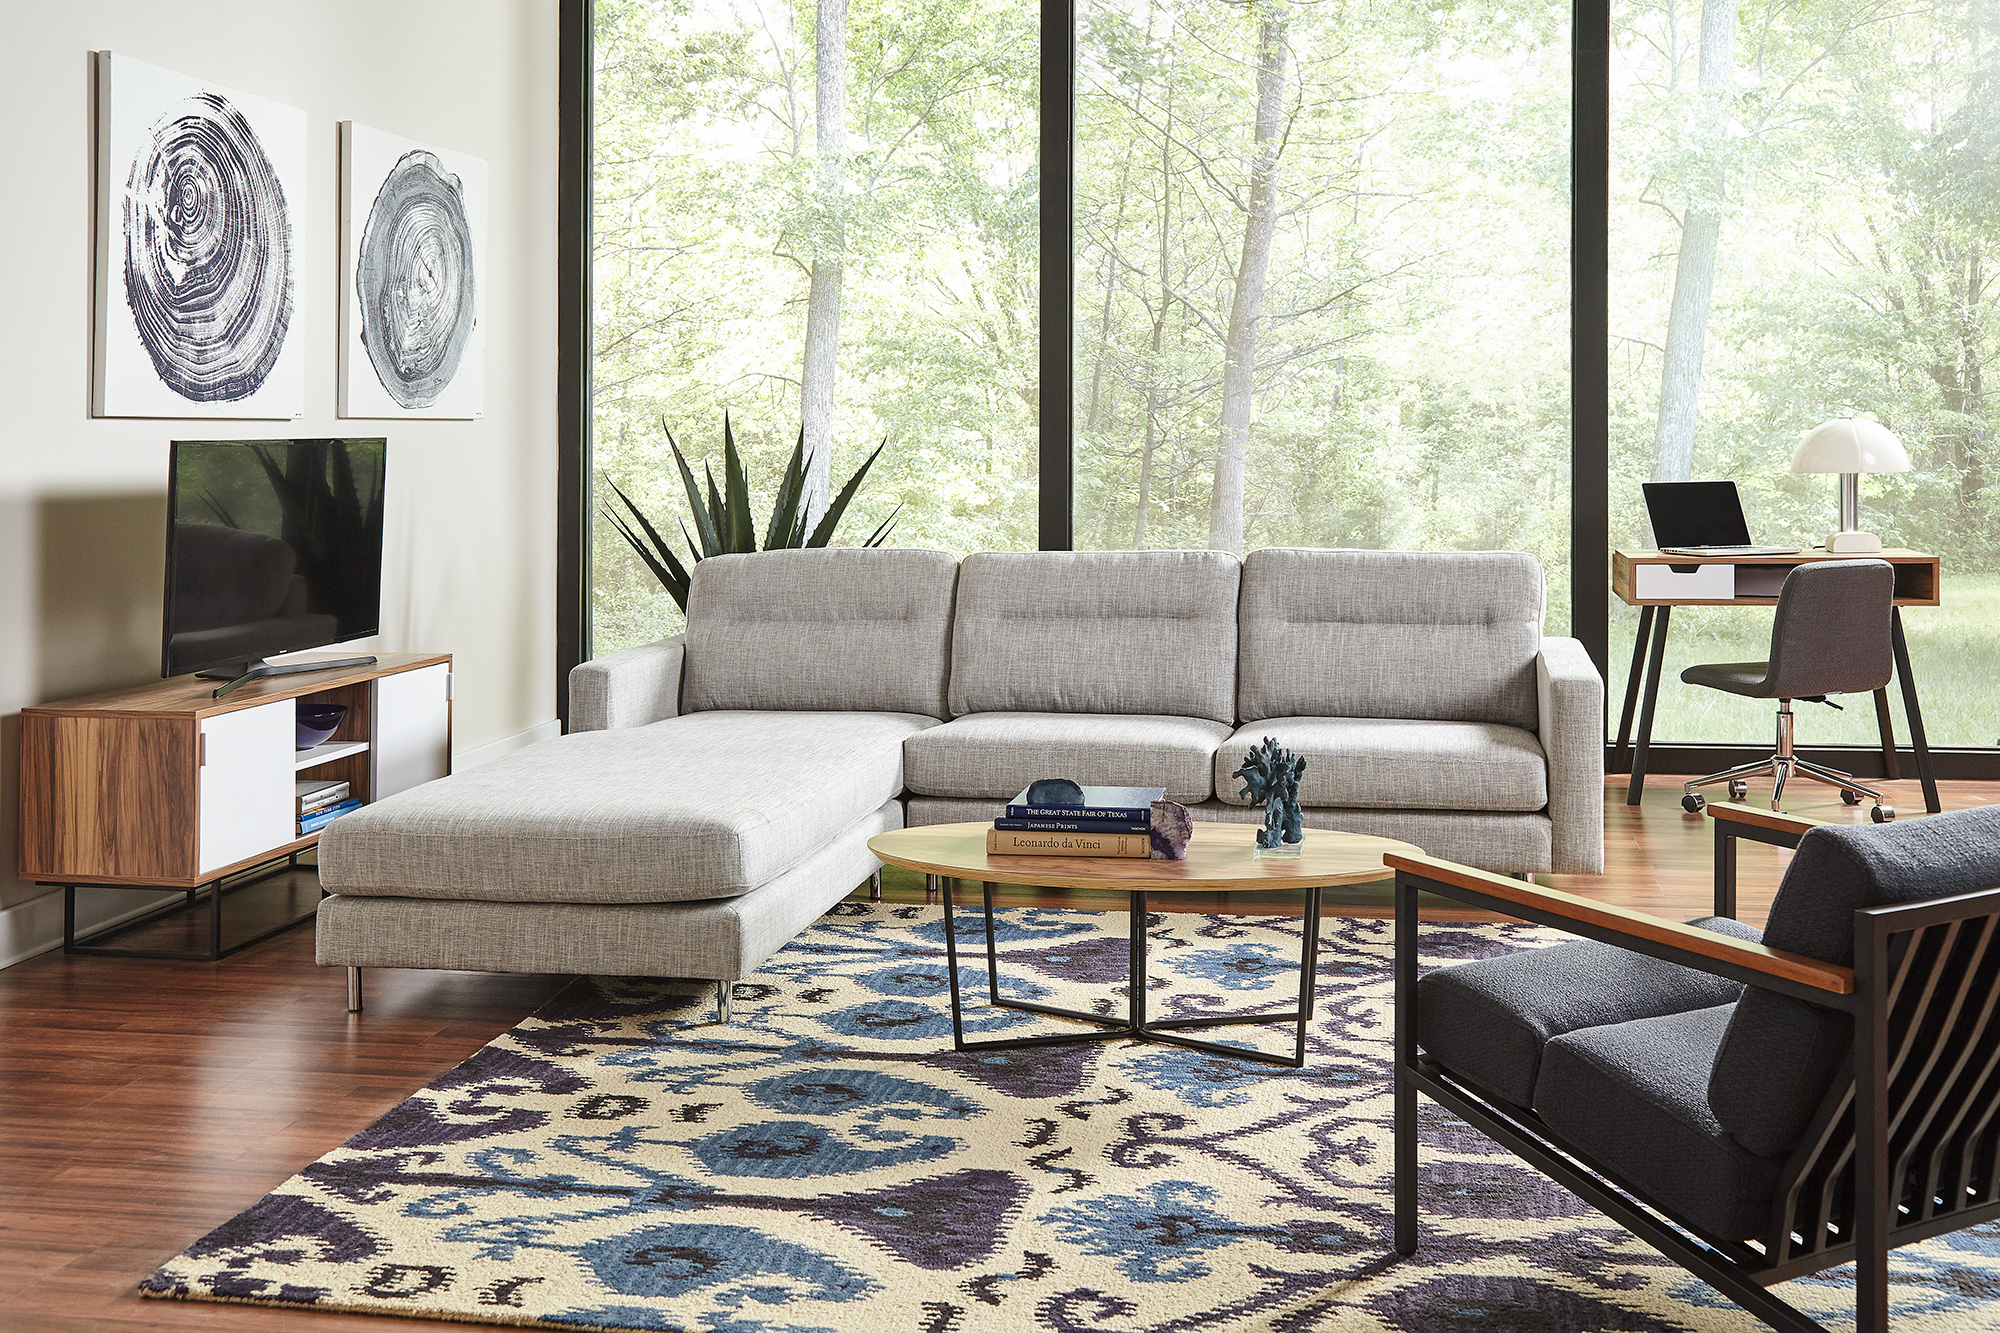 F3 Dmitri and iLive living room furniture for student housing